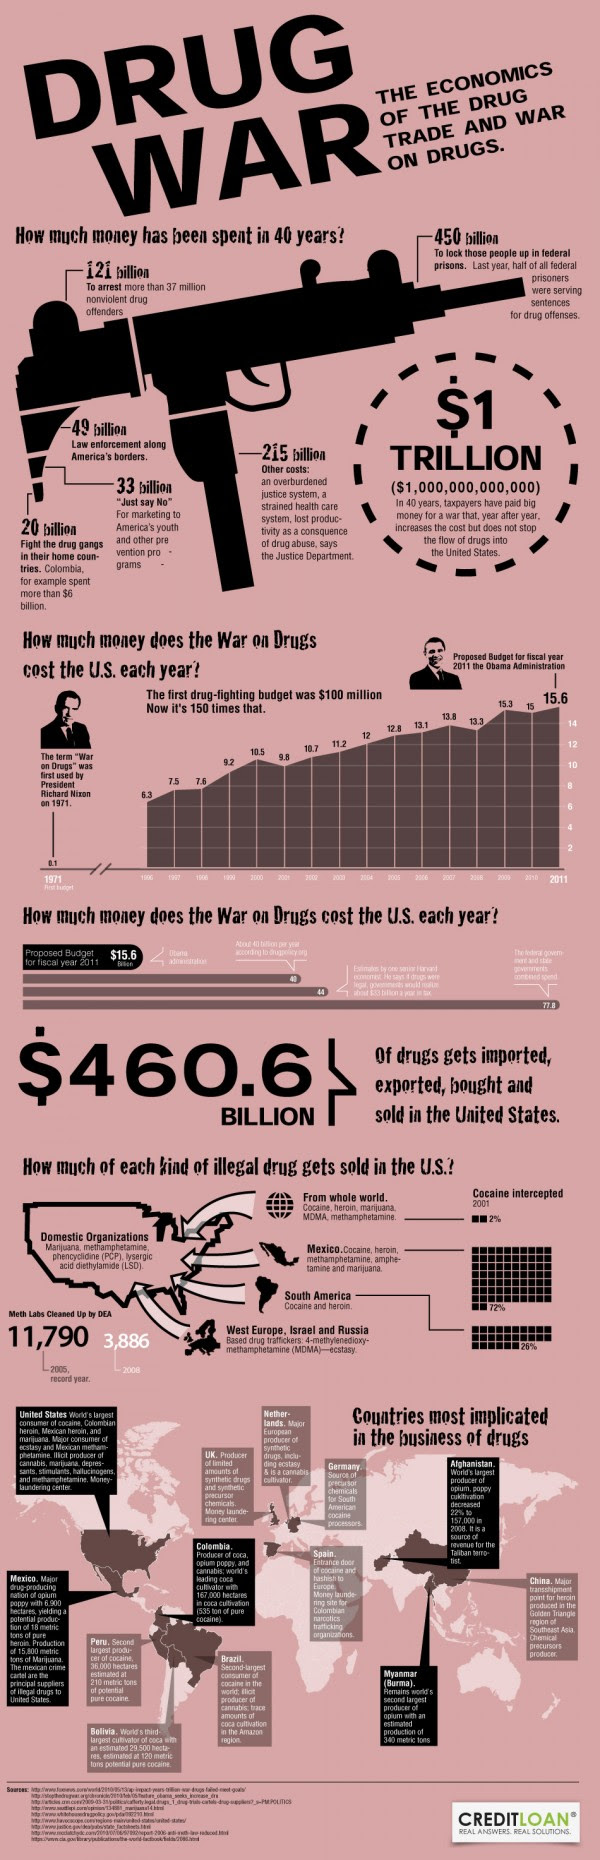 Image result for politicians drug use infographic